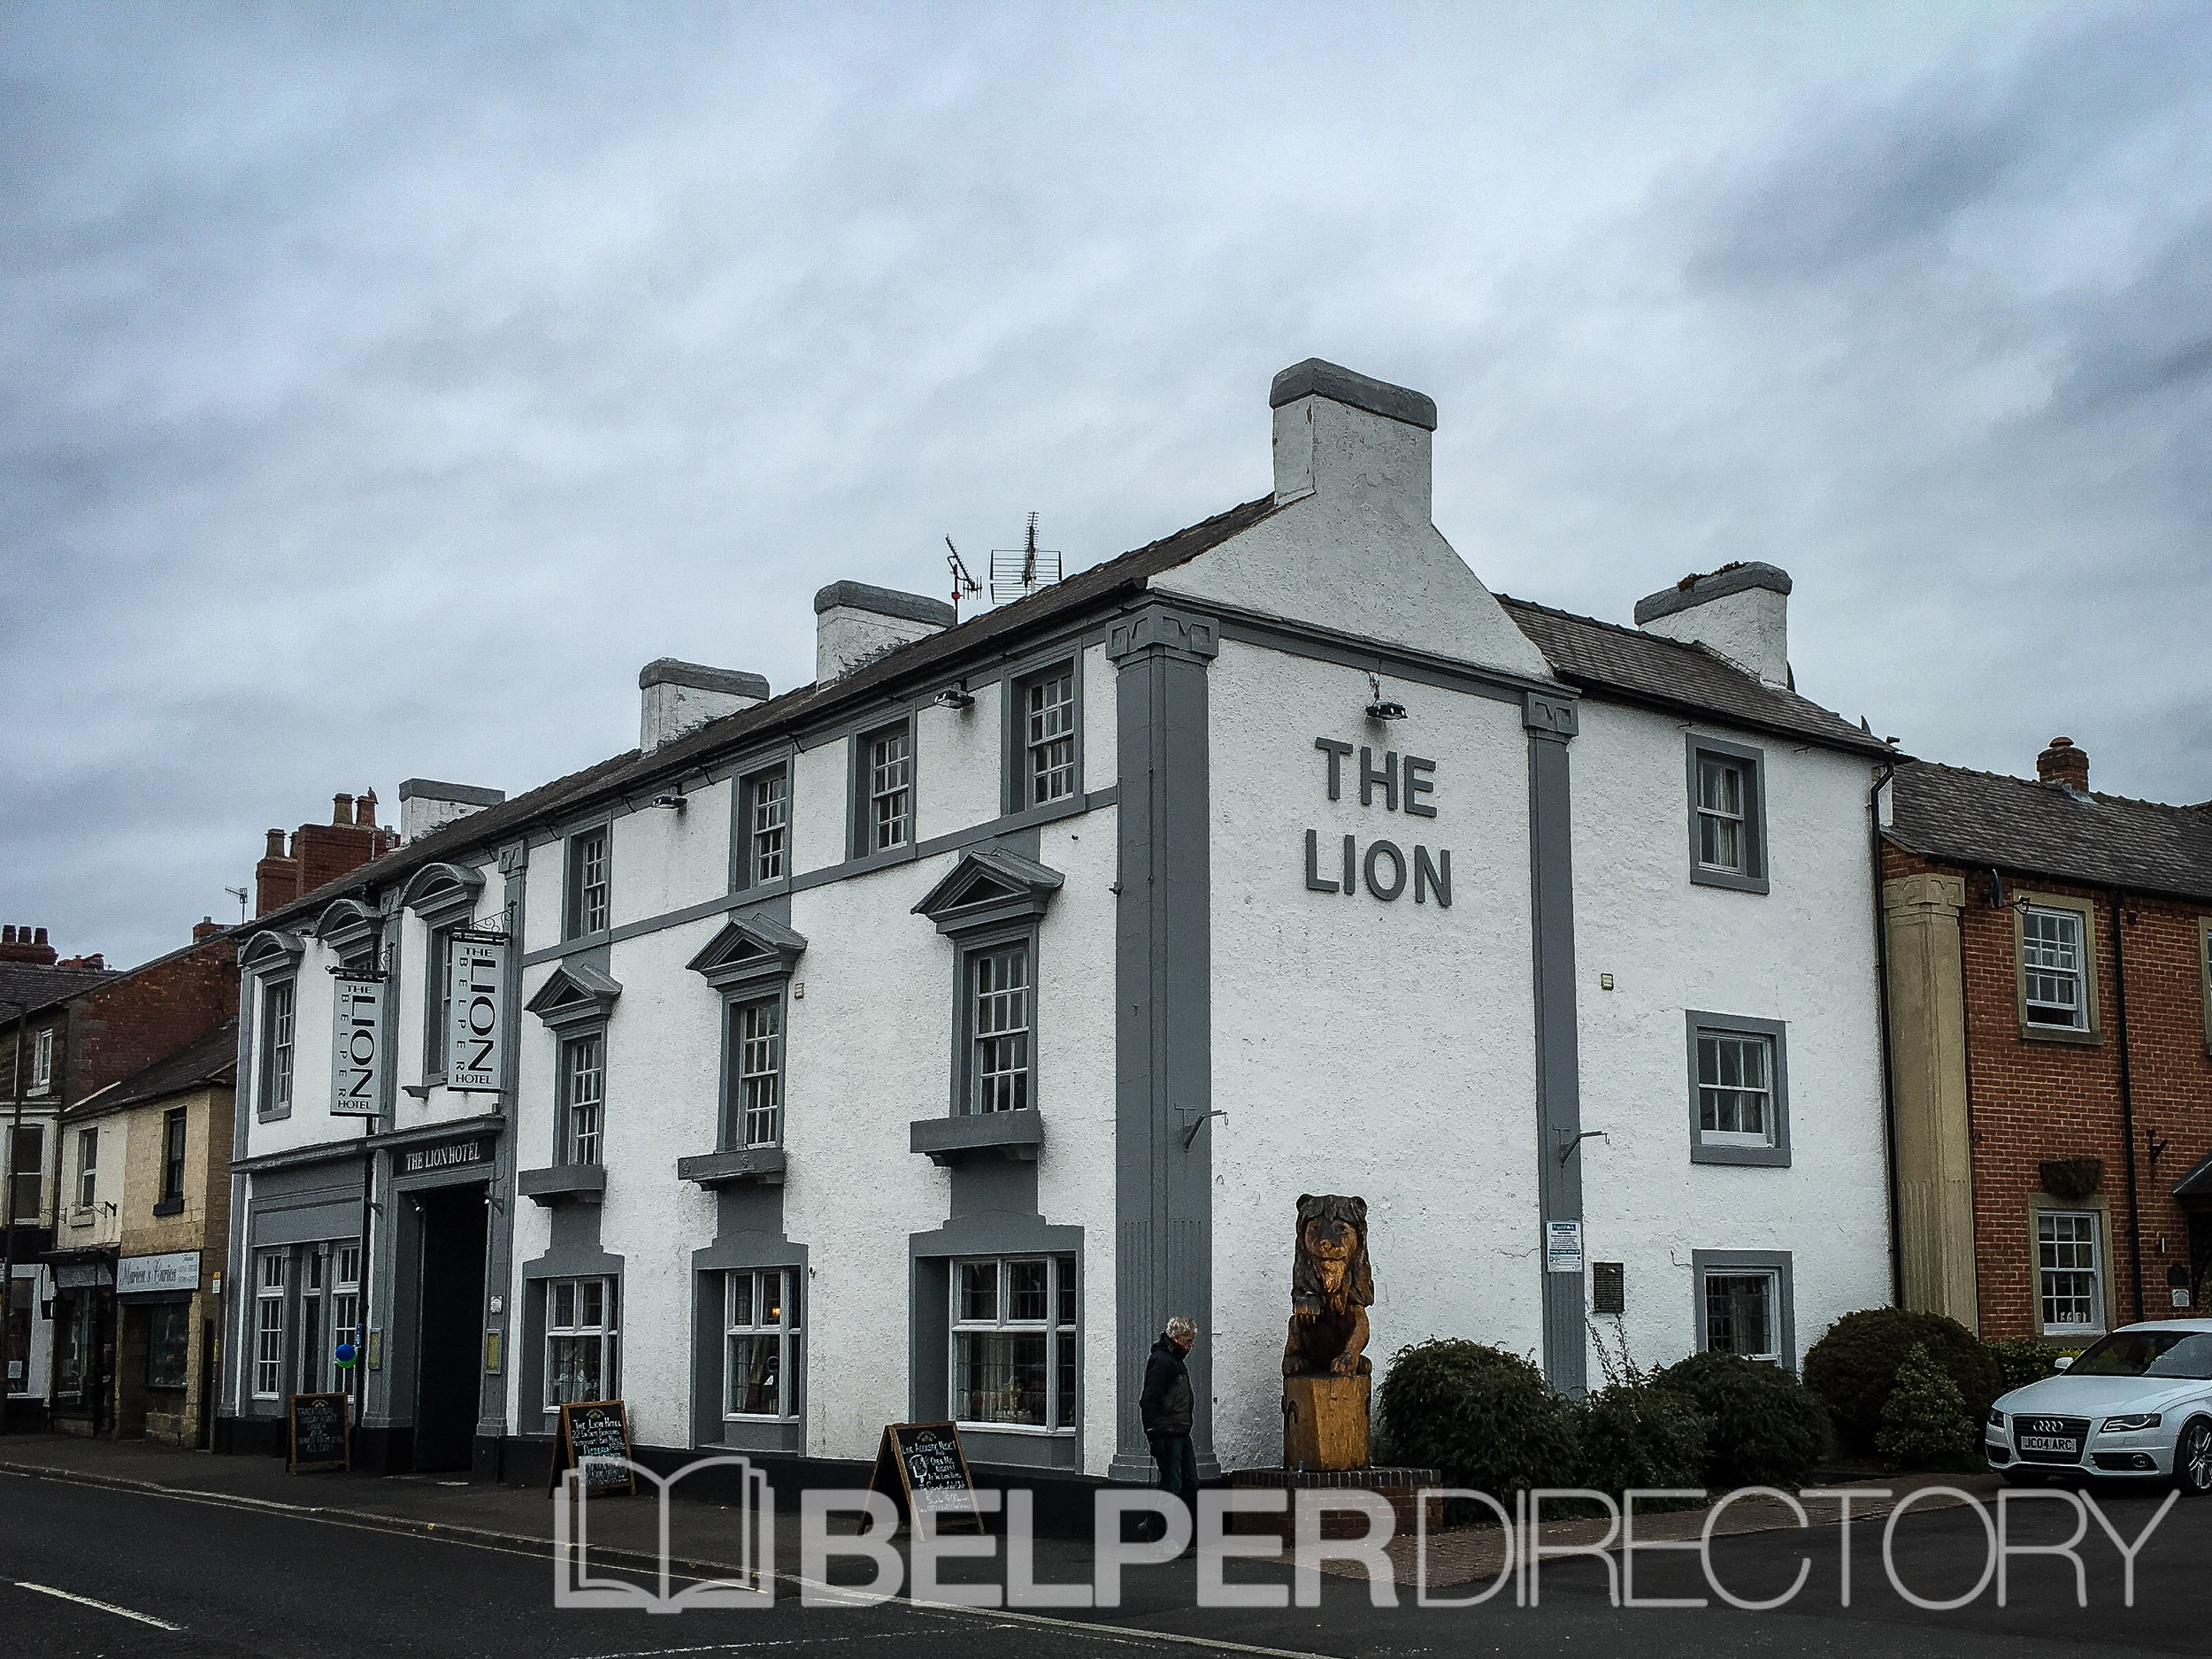 The Lion Hotel on Inter Search